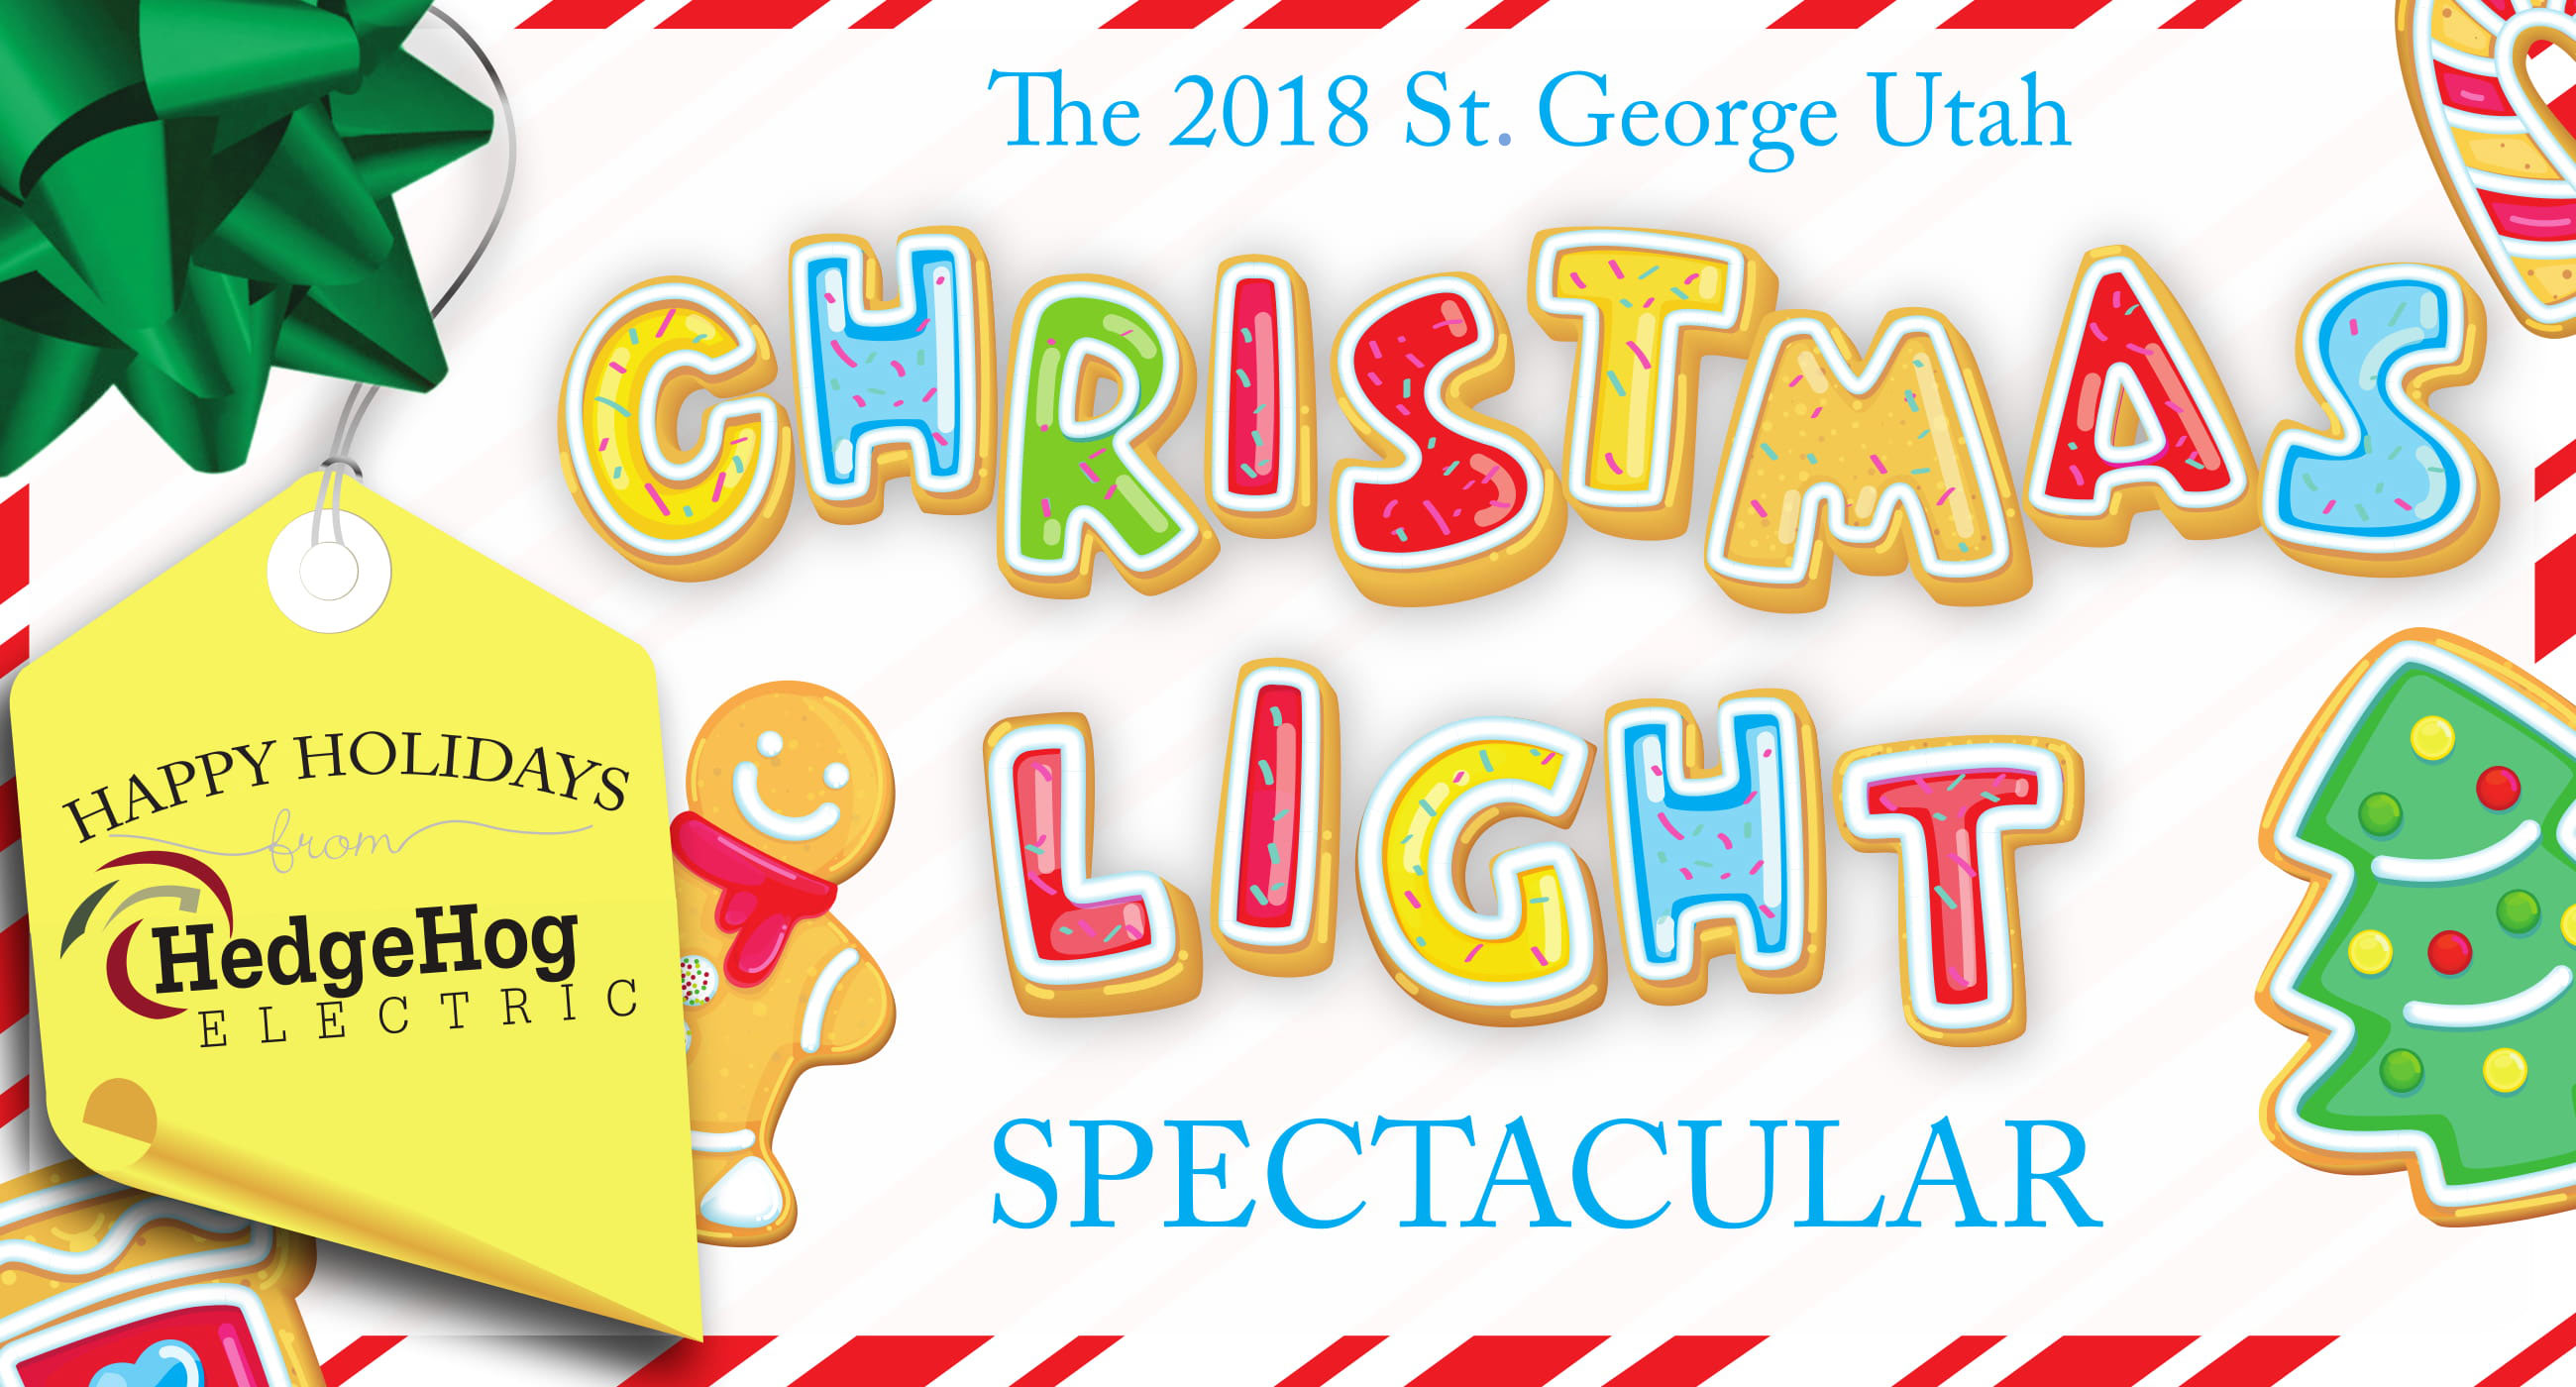 Get the 2018 Christmas Spectacular Map Here